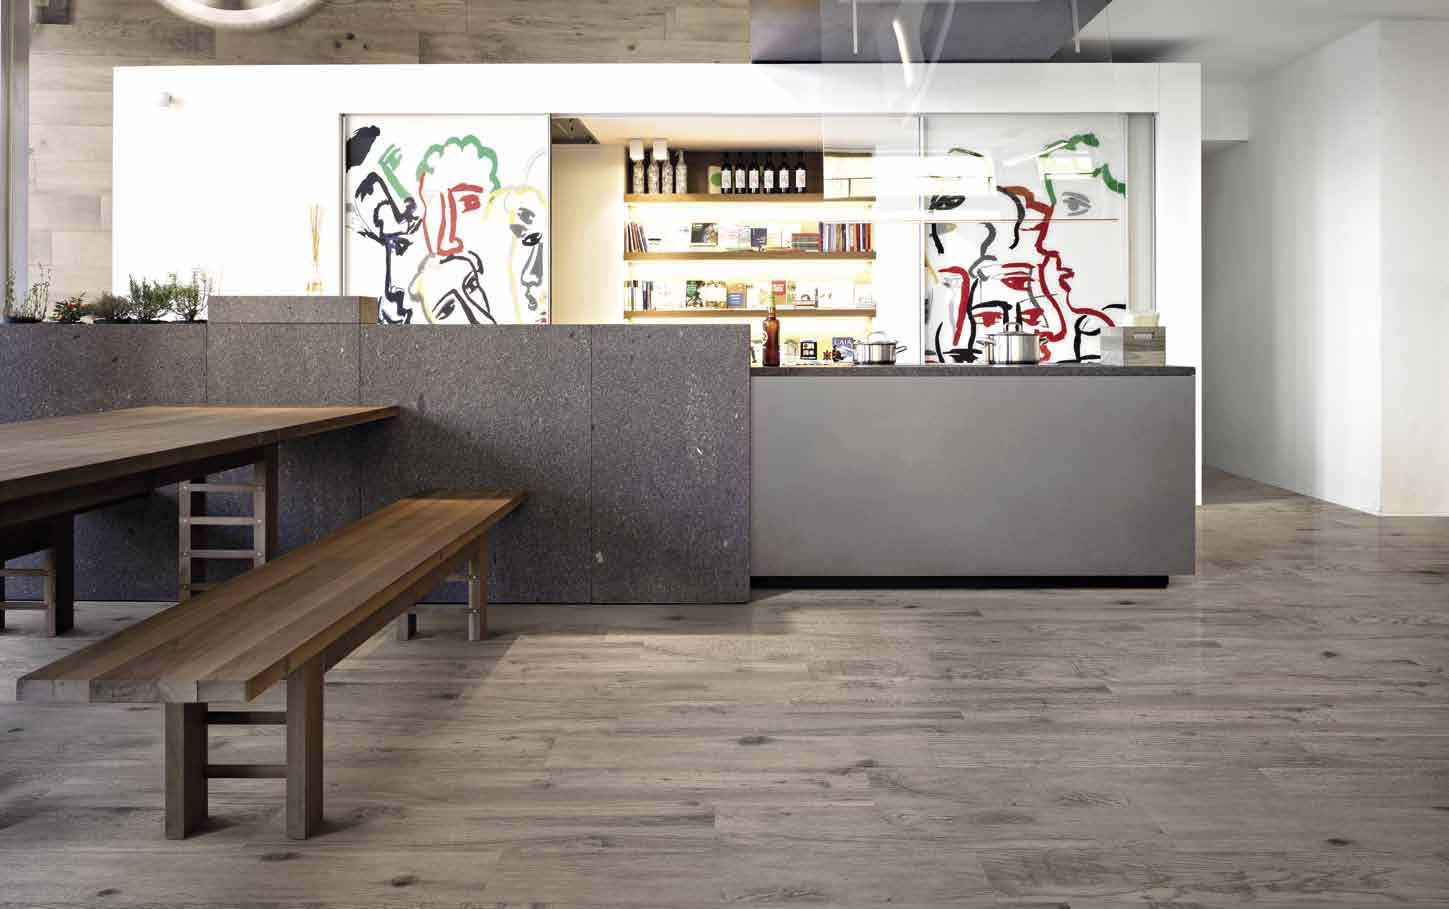 Wood Talk, a high-performance technical product, proposes a selection of different woods that endow spaces with a modern look inspired by nature.